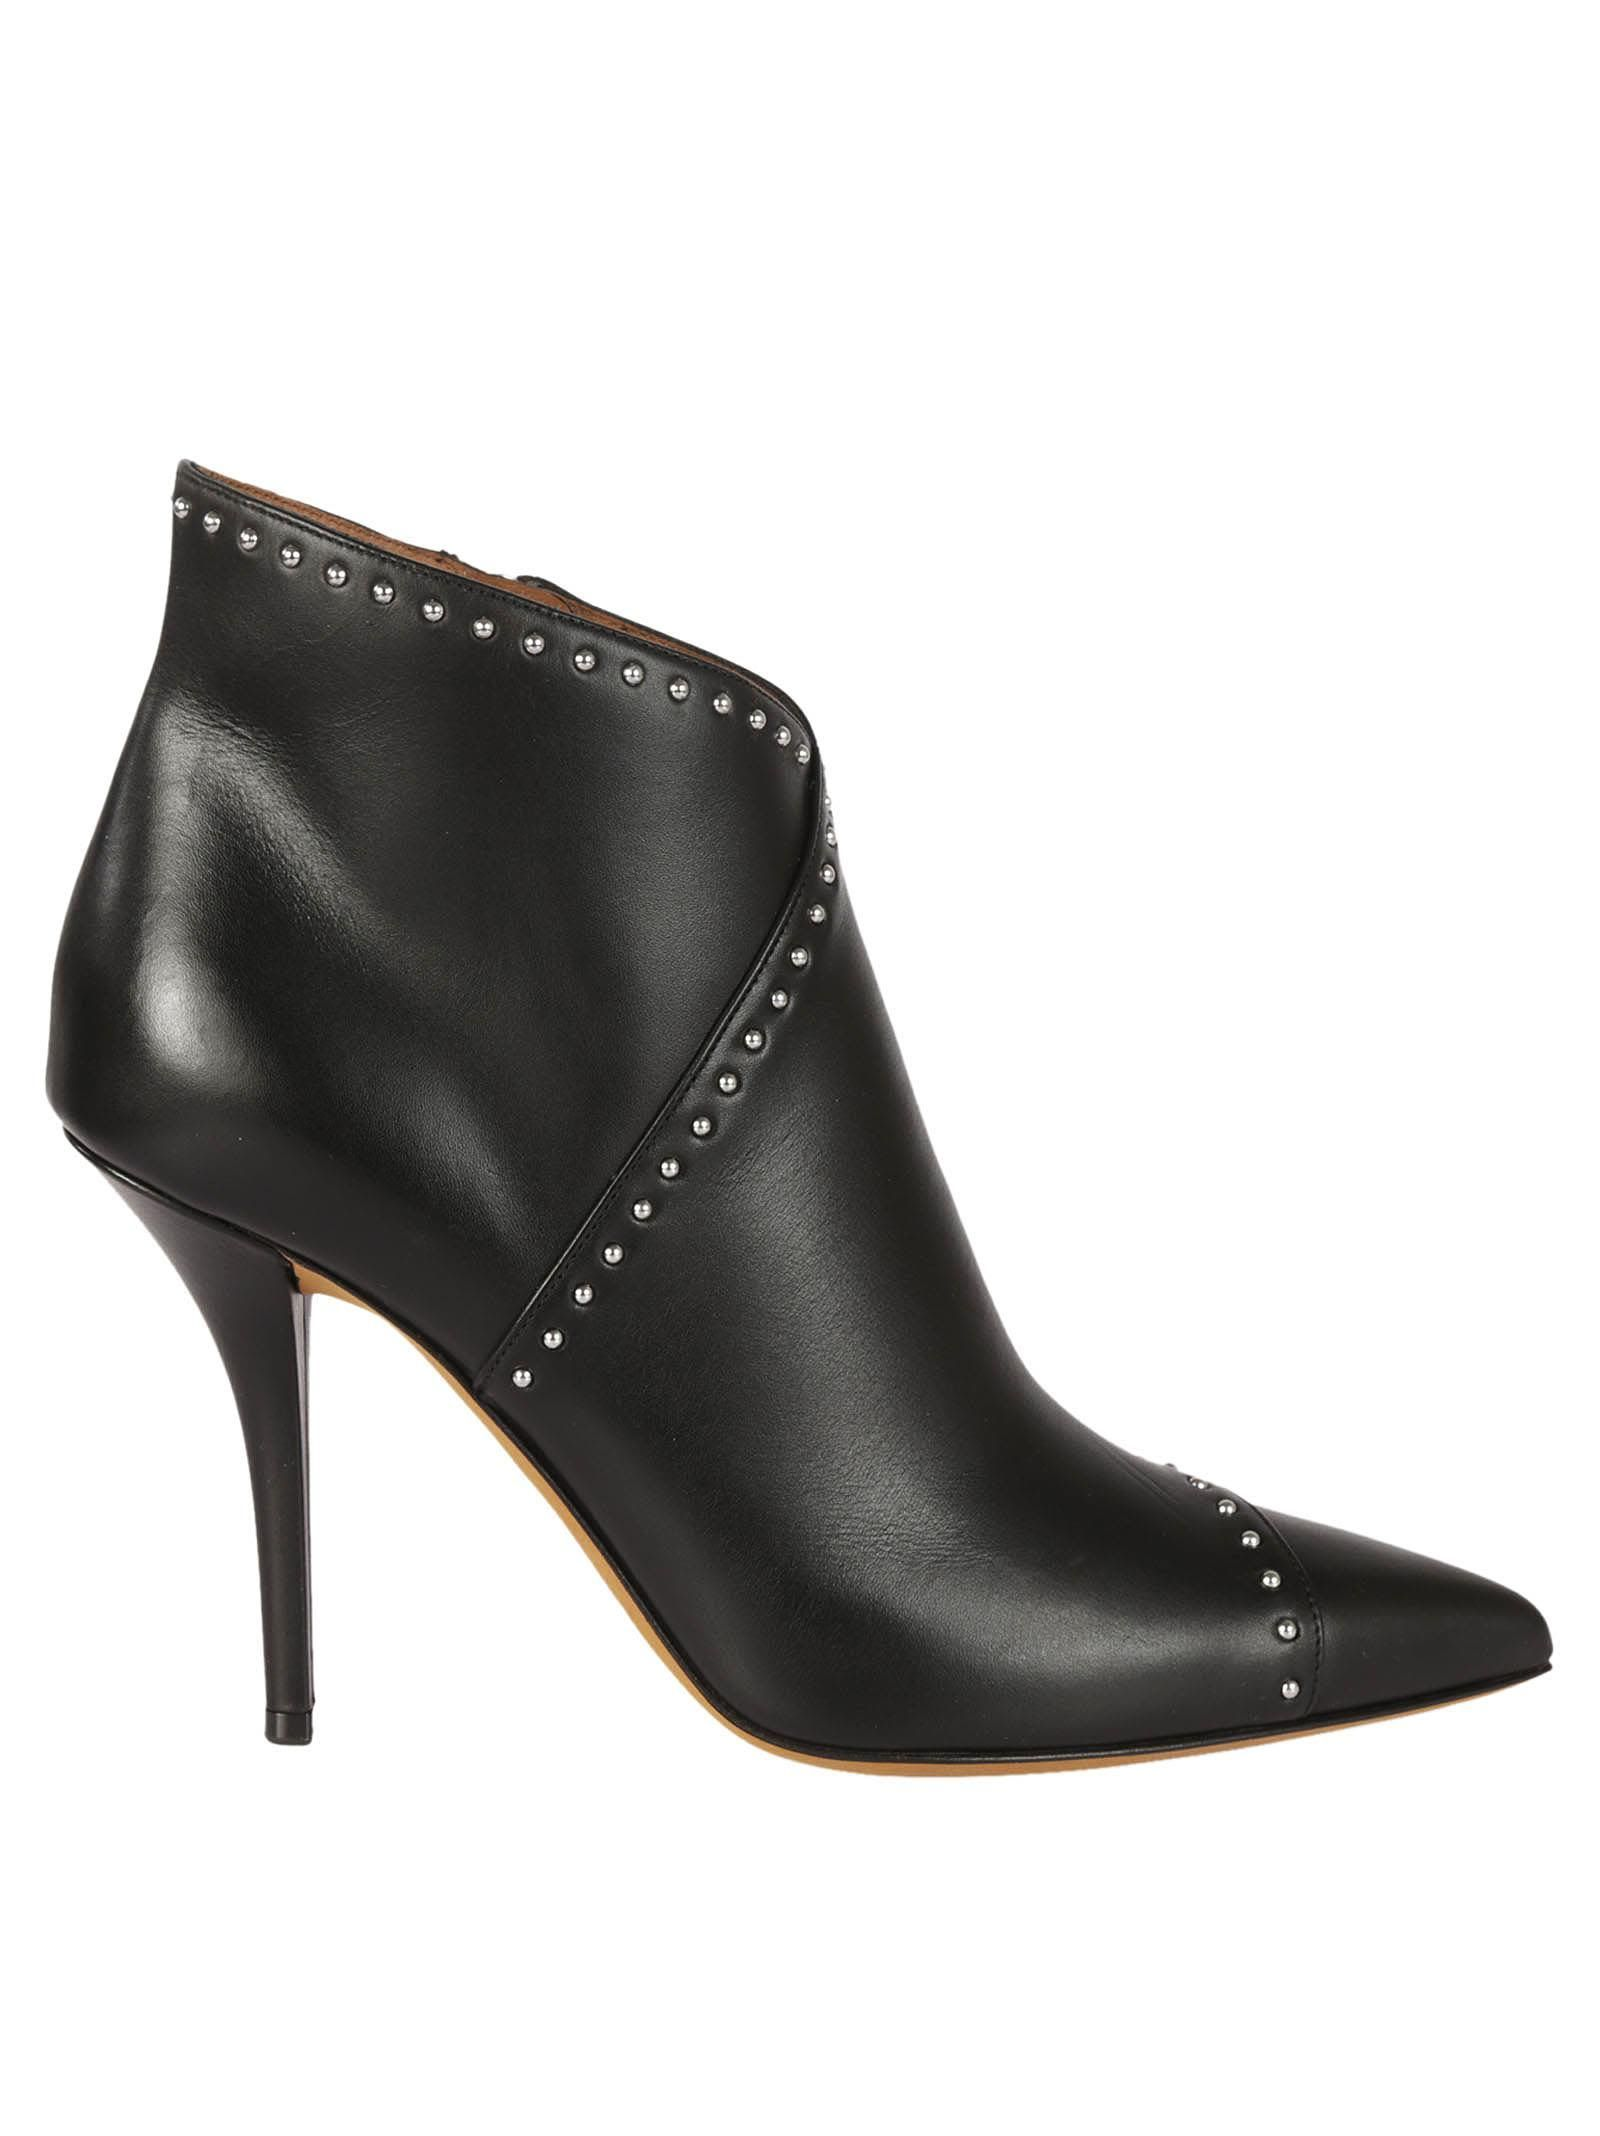 a3415636af9 Studded Ankle Boots from Givenchy  Black Studded Ankle Boots with pointed  toe